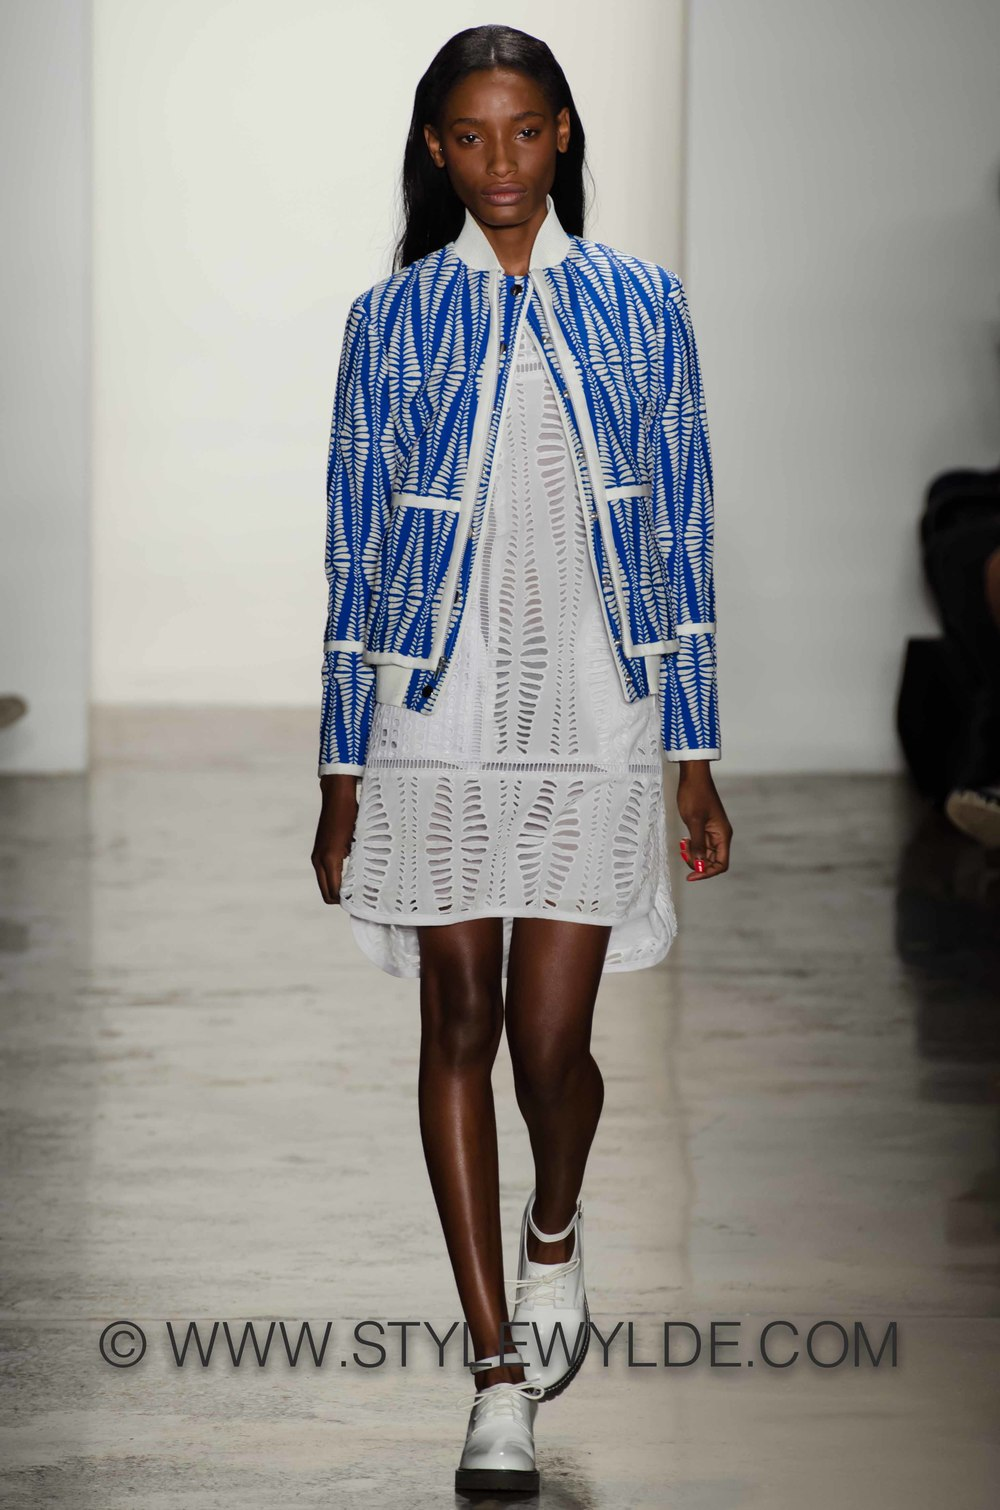 stylewylde_timo_weiland_gallery_ss2014-17.jpg